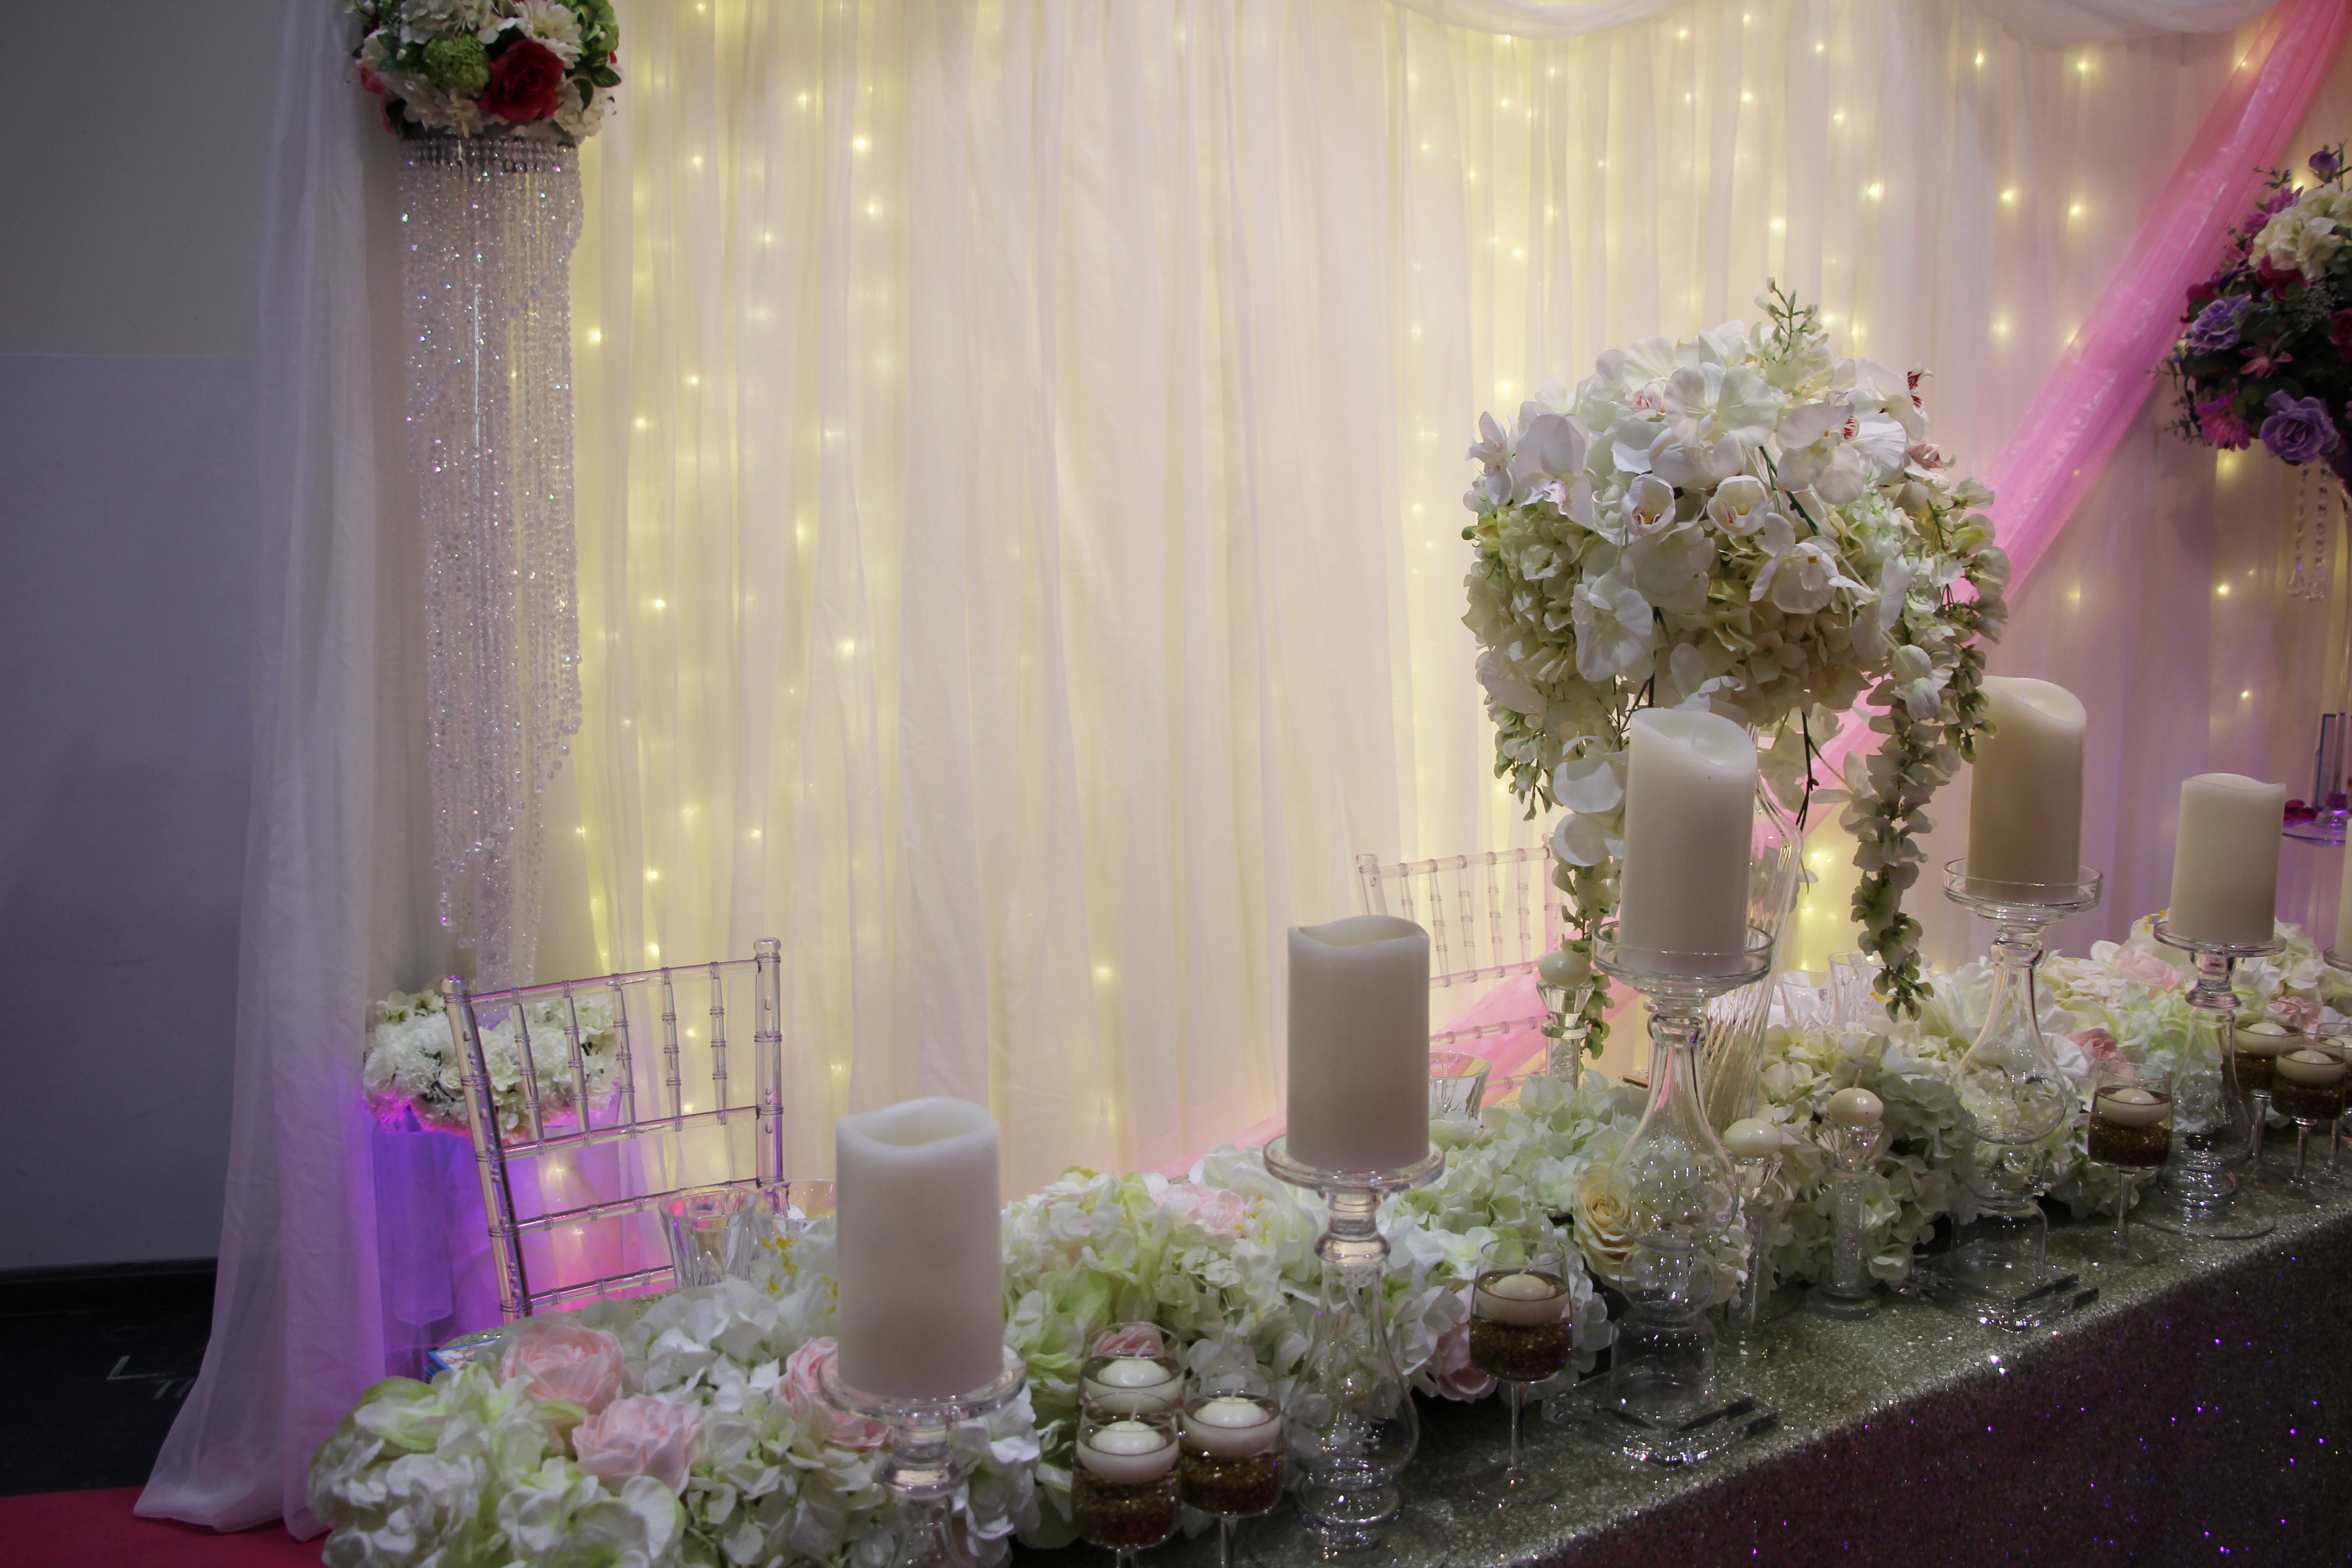 Are weddings the new 'fancy and expensive party' to have?